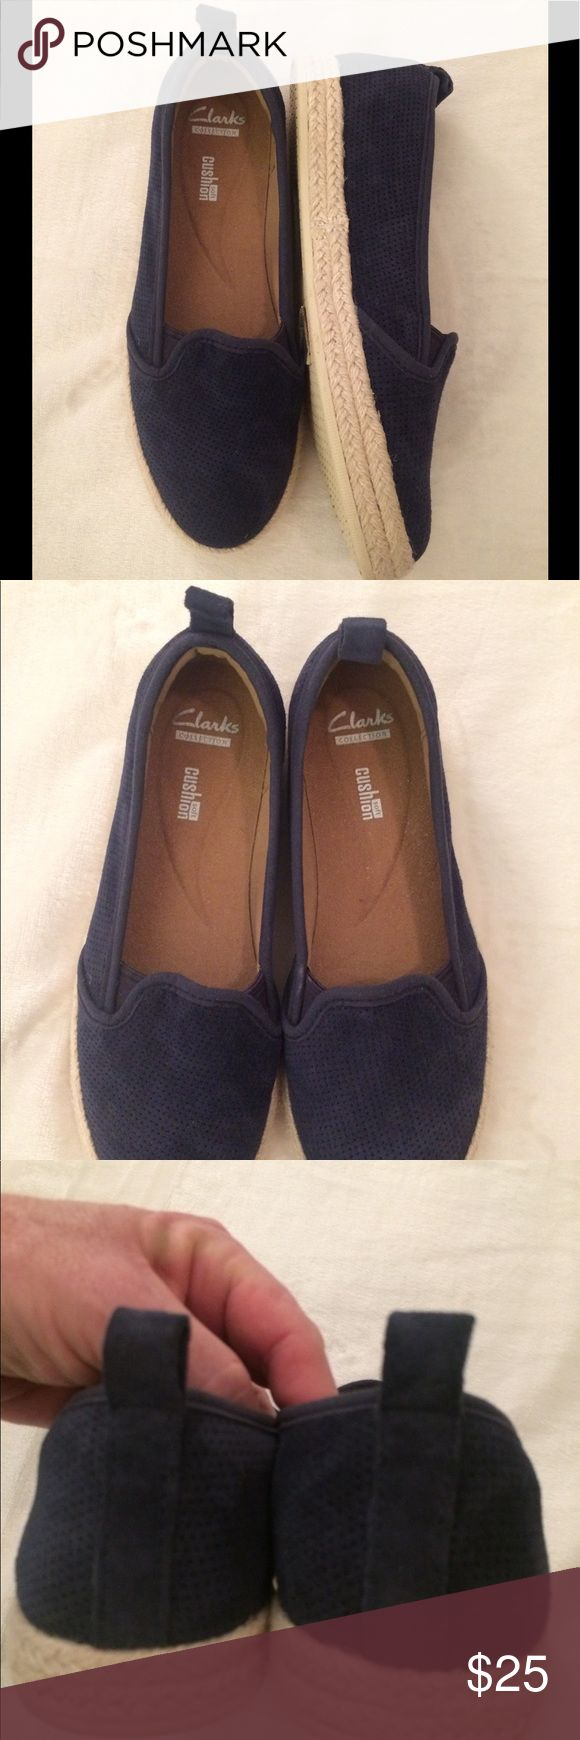 Clark shoes EUC. Navy suede. Super cute and comfy. Clarks Shoes